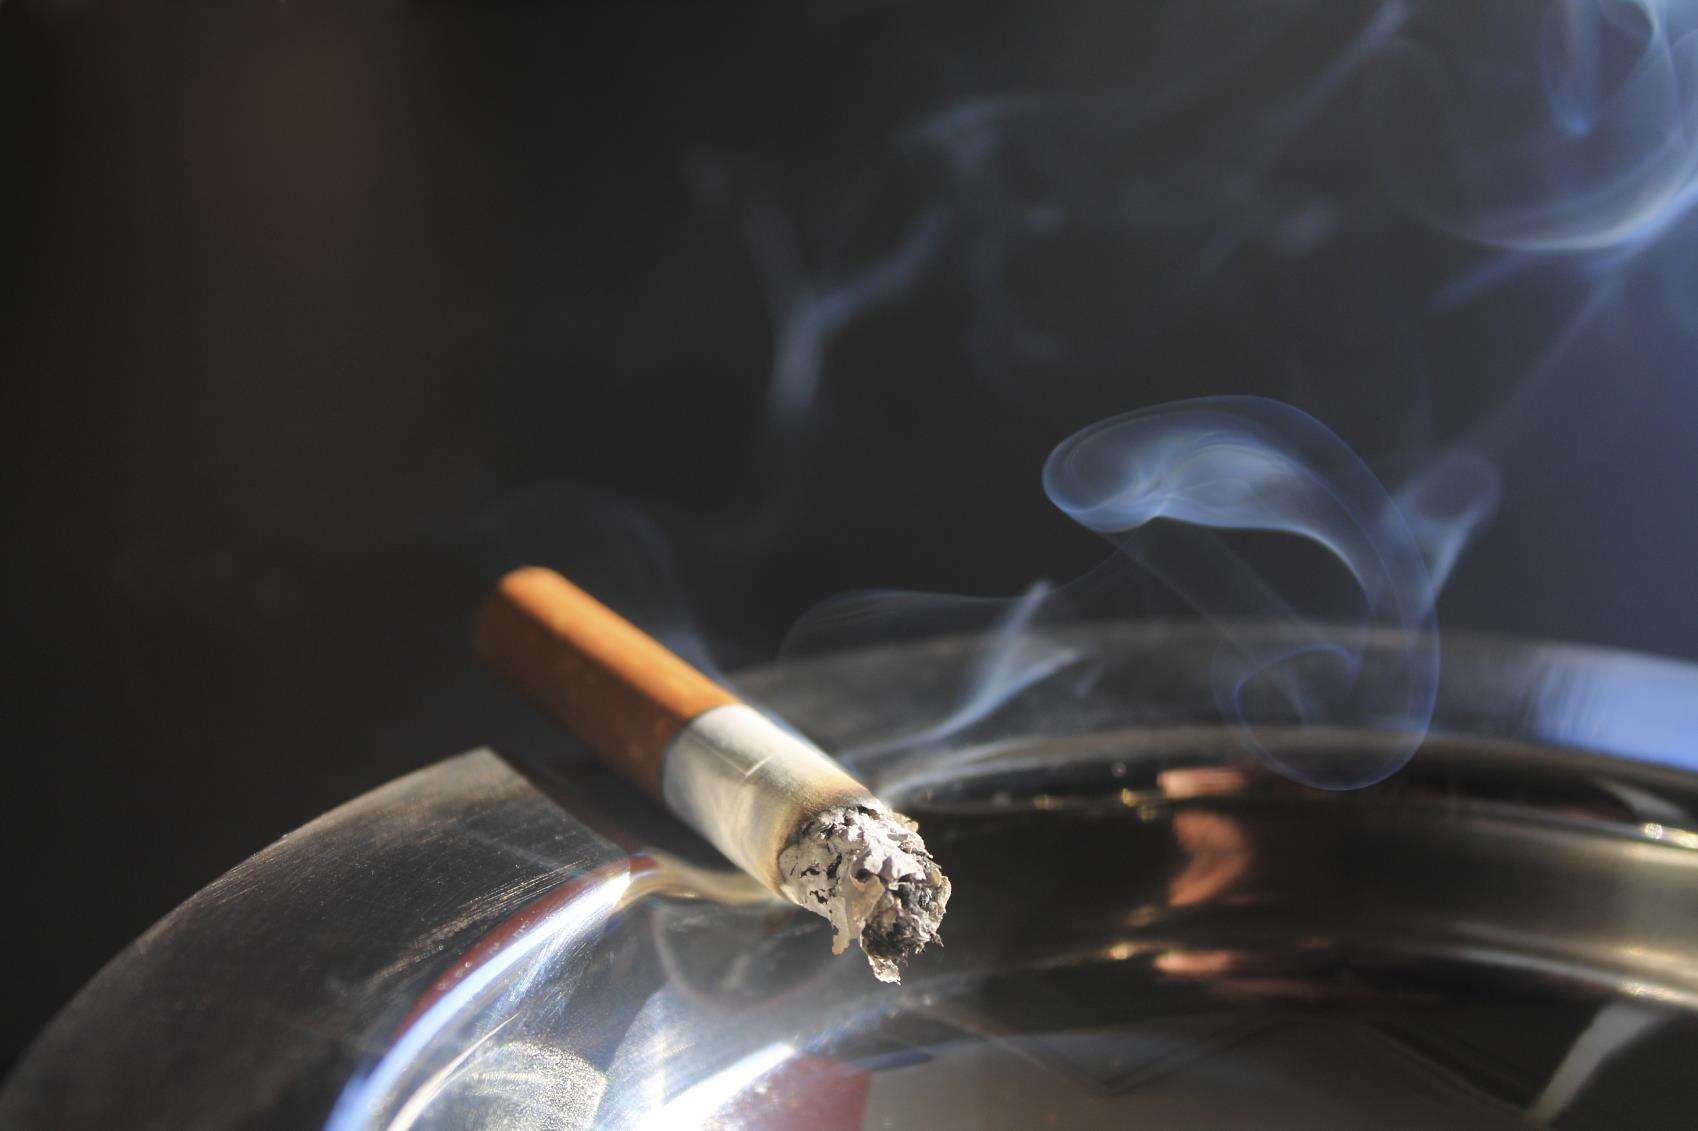 Not a single person has signed up for Swale council's litter-related quit smoking scheme